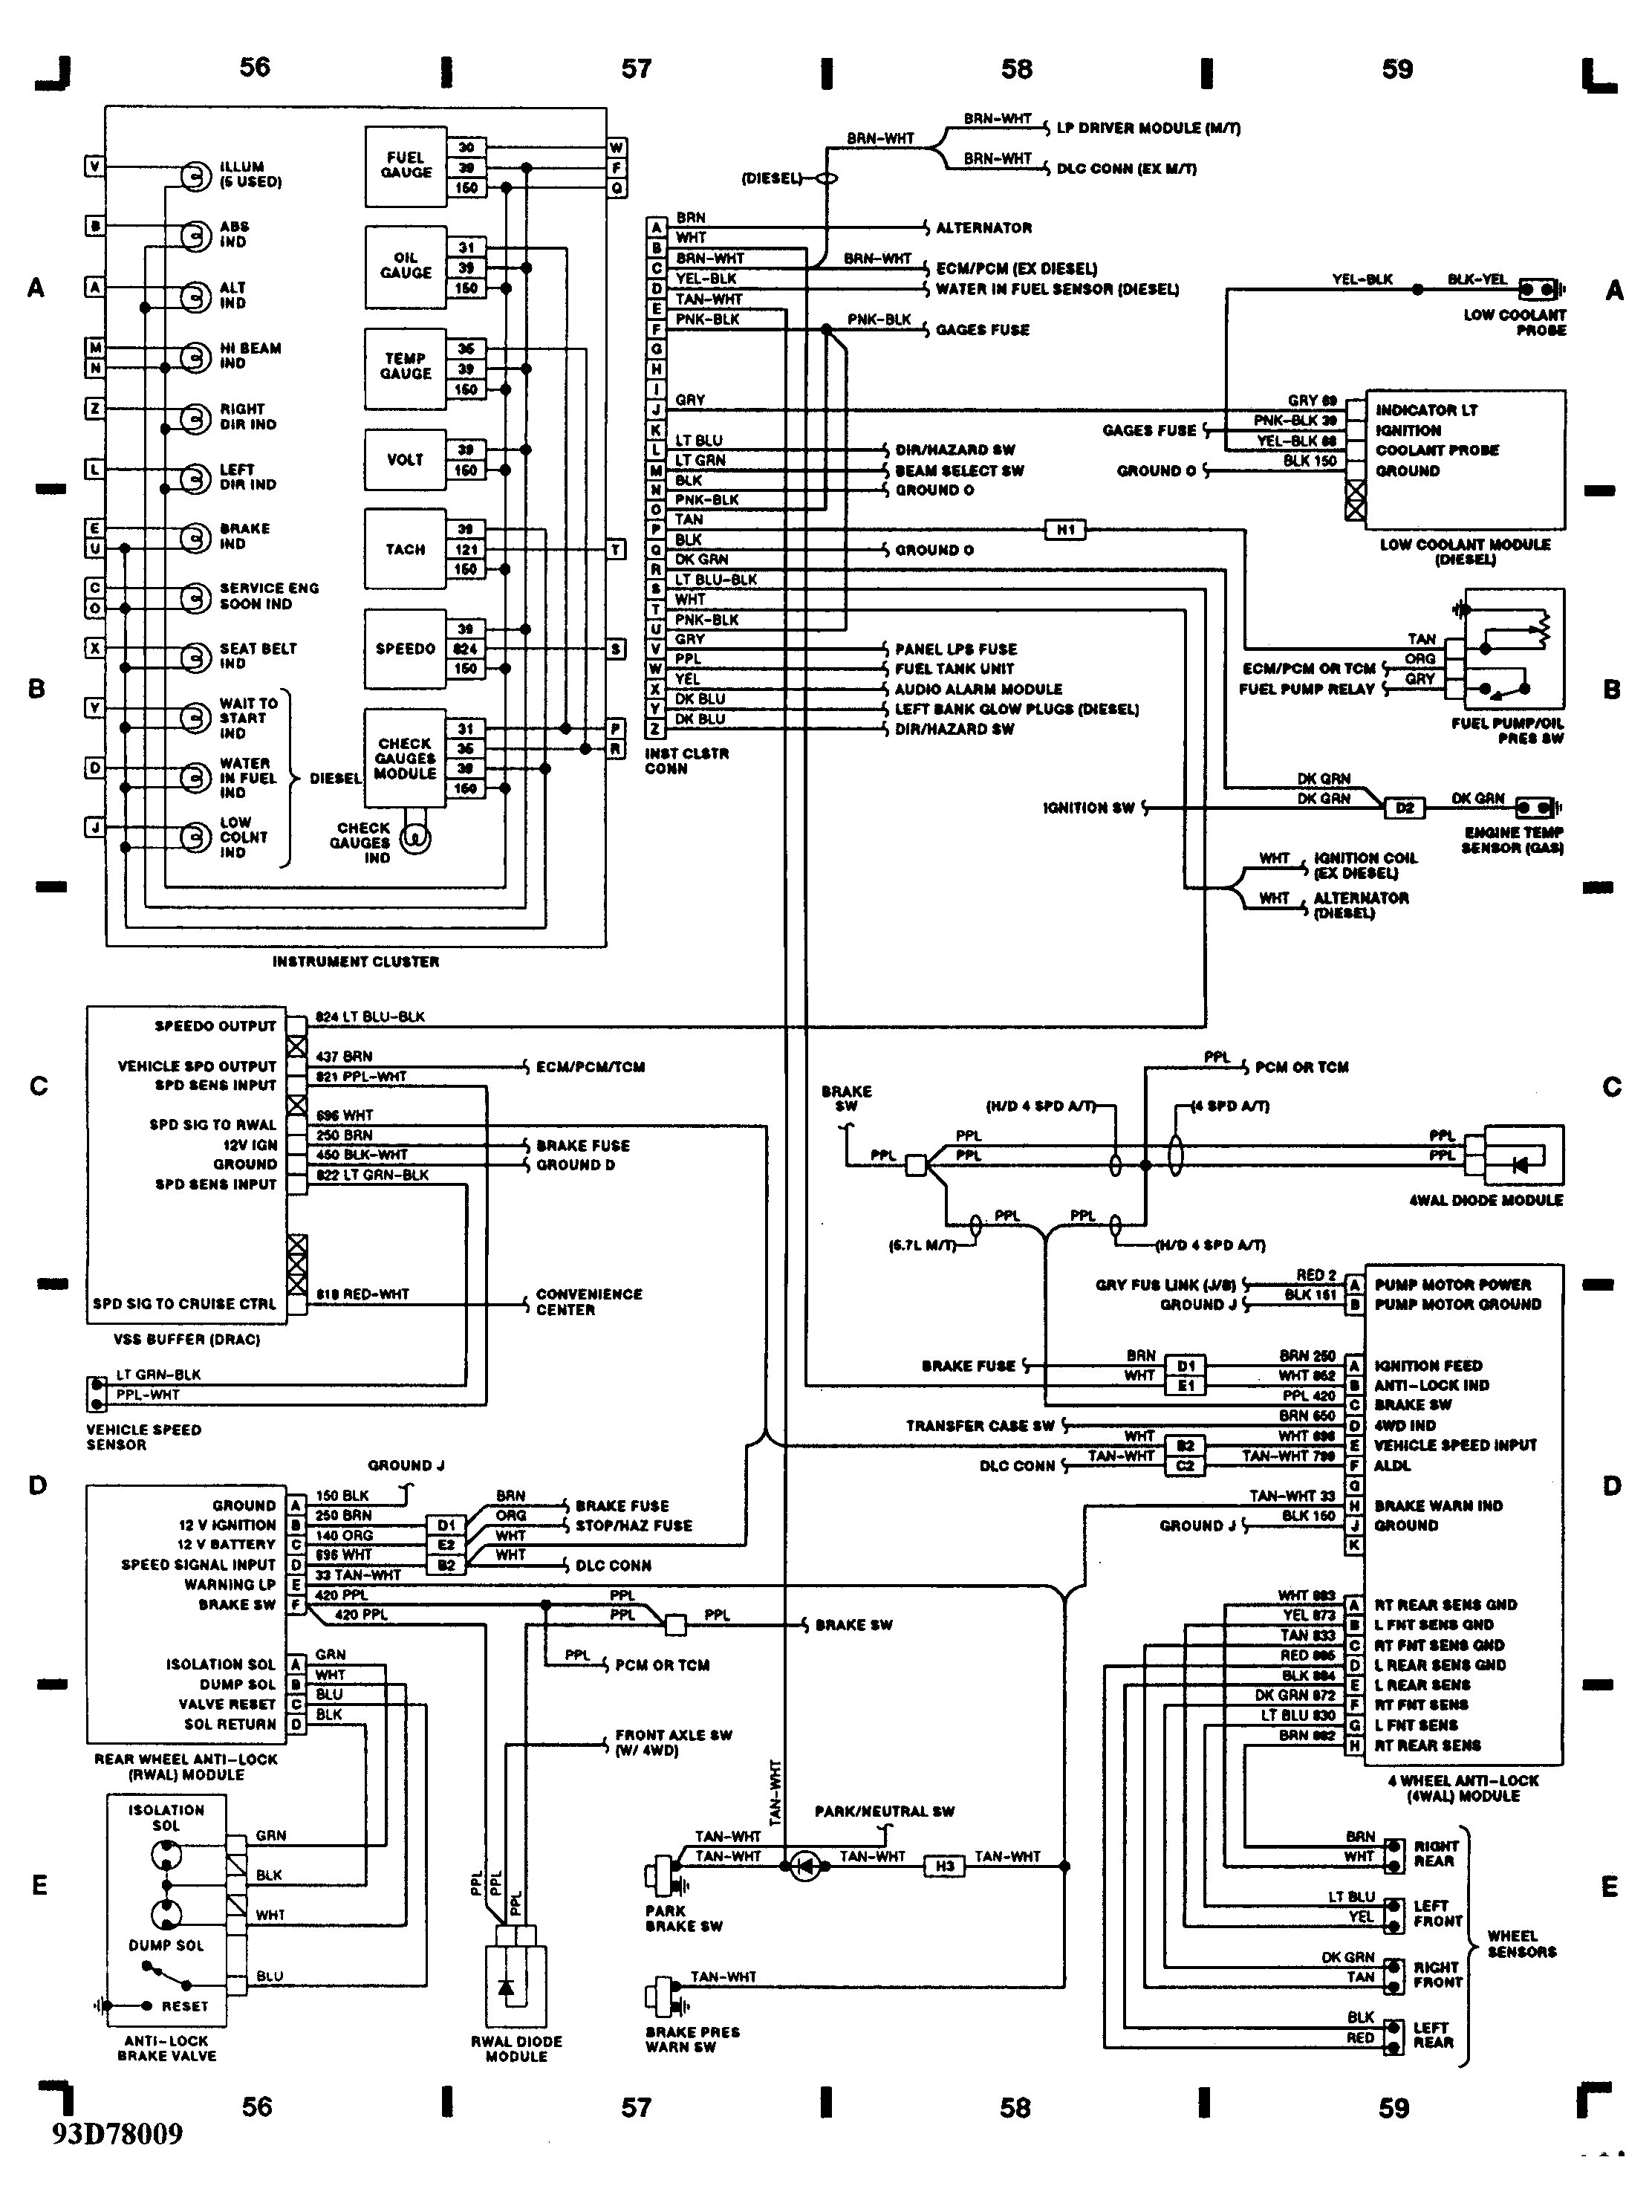 2000 chevy malibu engine diagram diy enthusiasts wiring diagrams u2022 rh okdrywall co